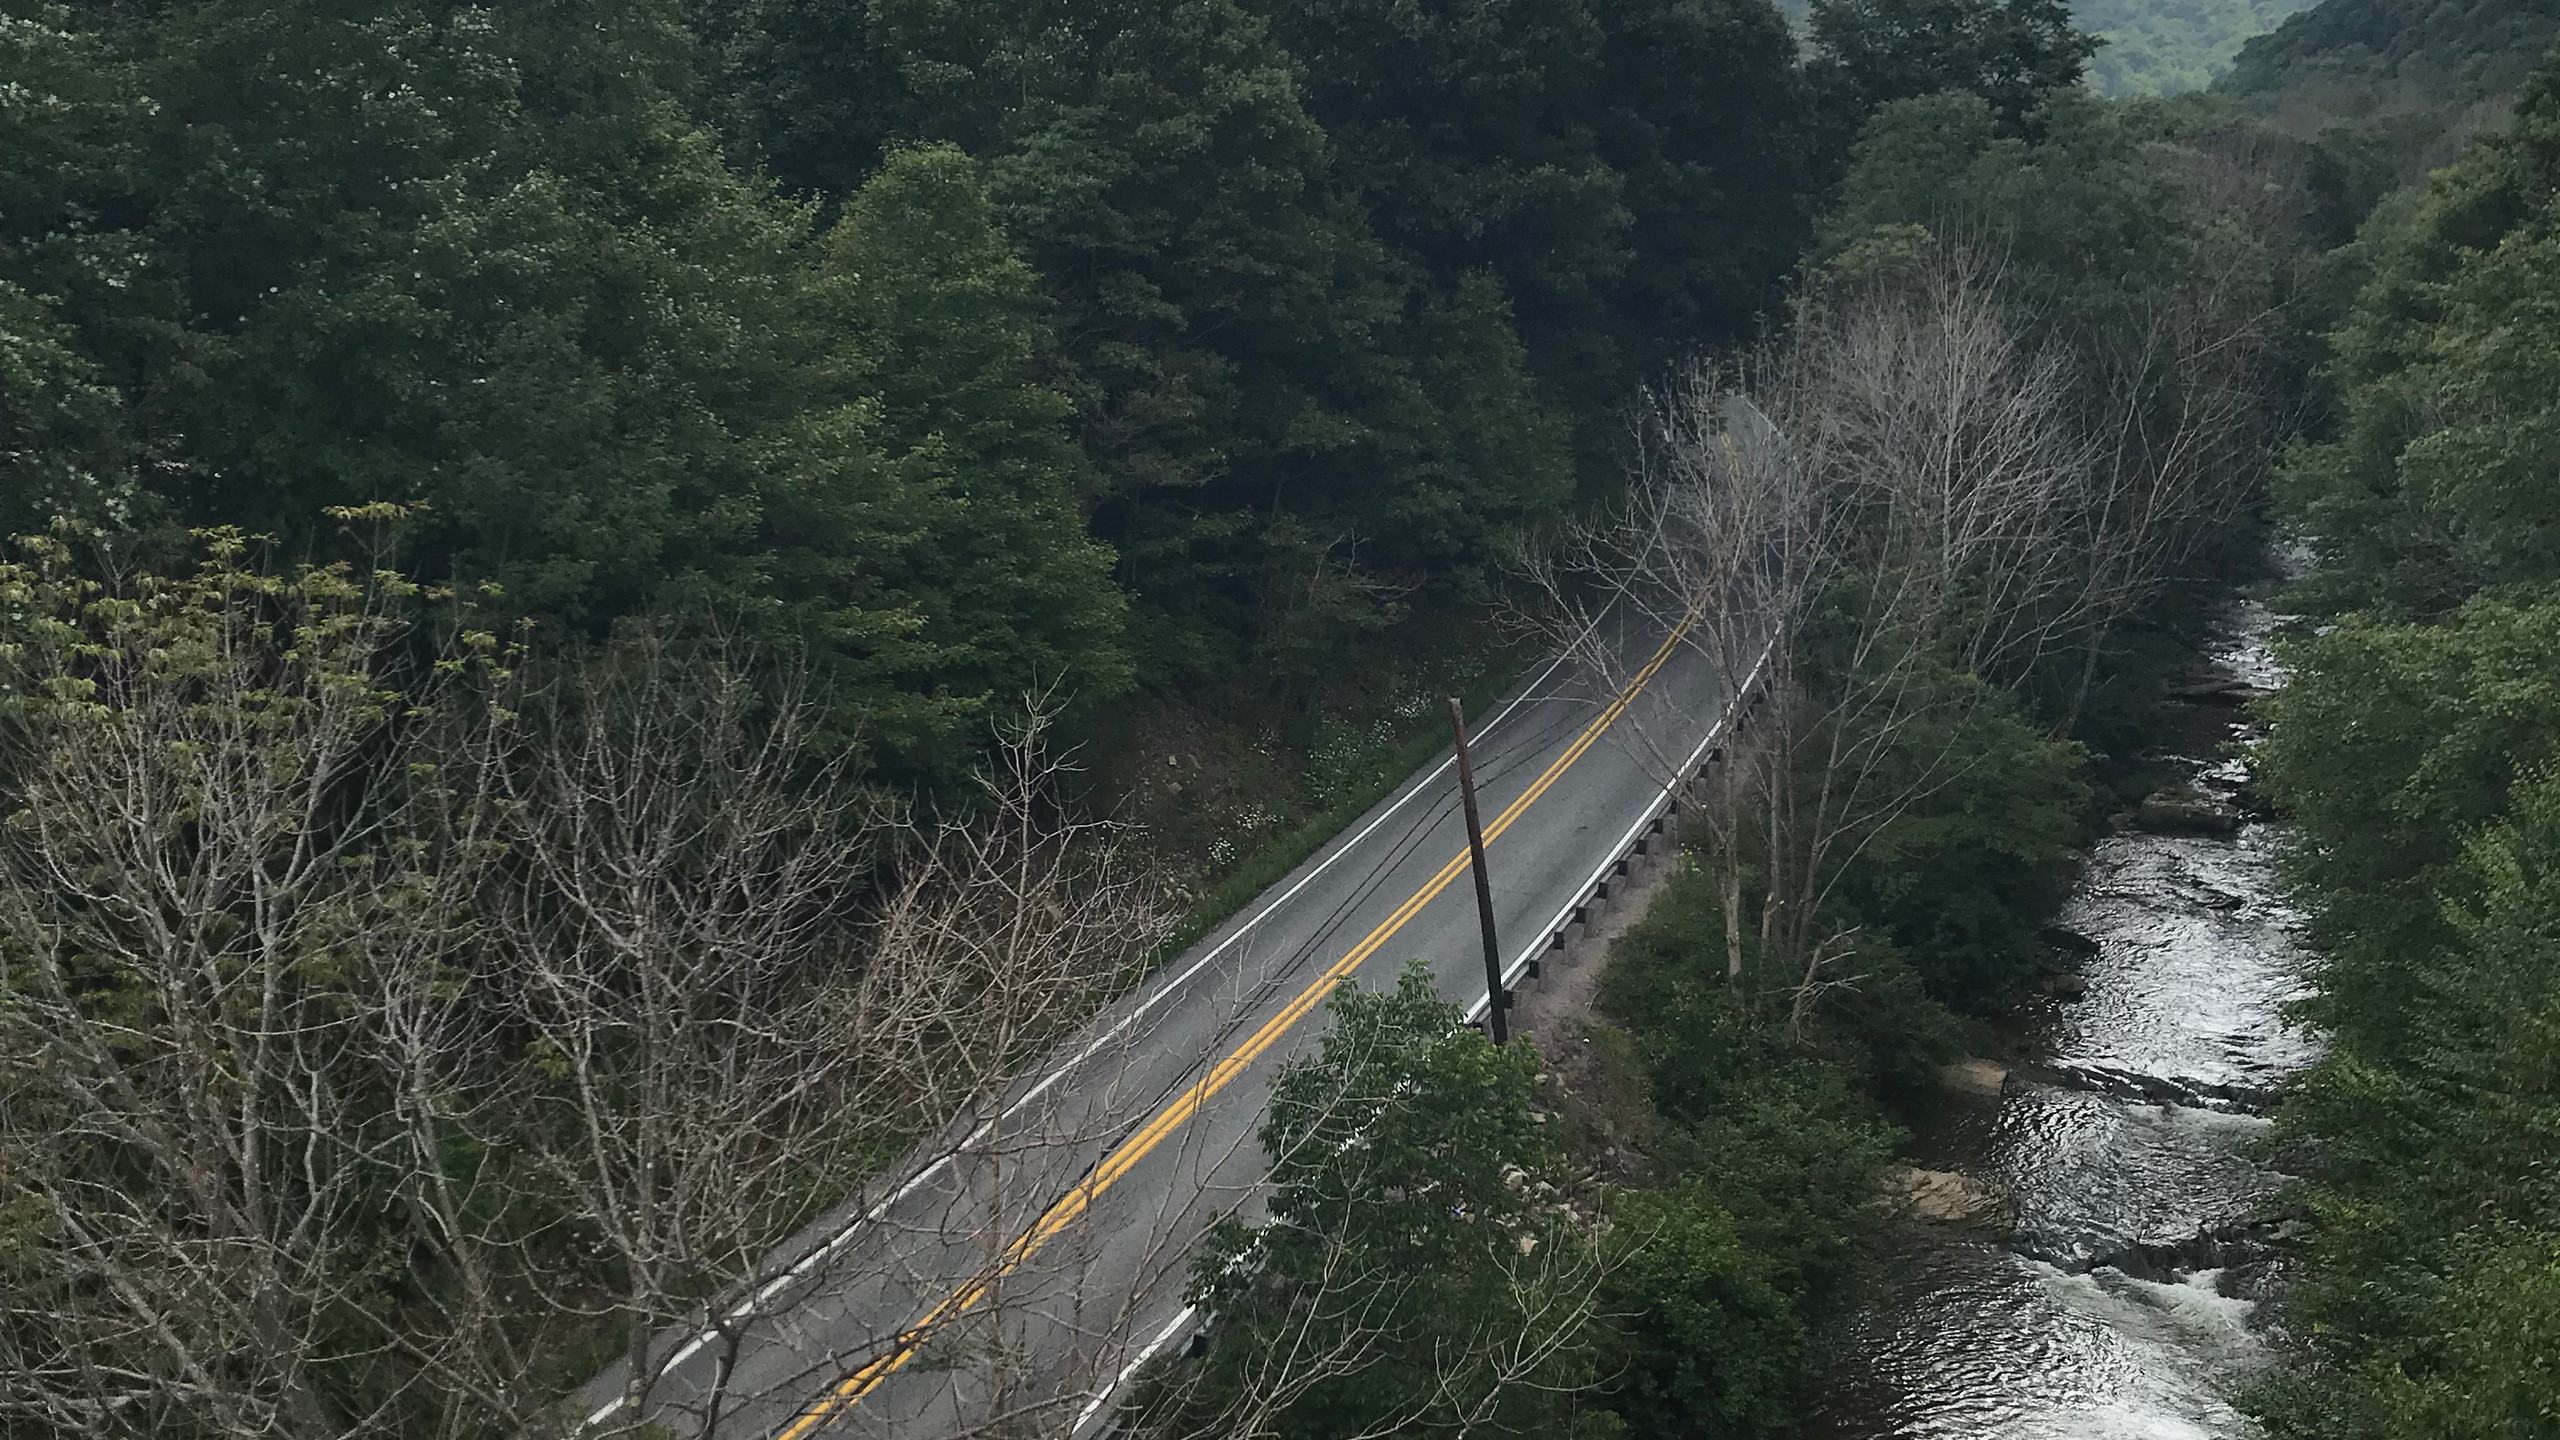 View from Keystone Viaduct